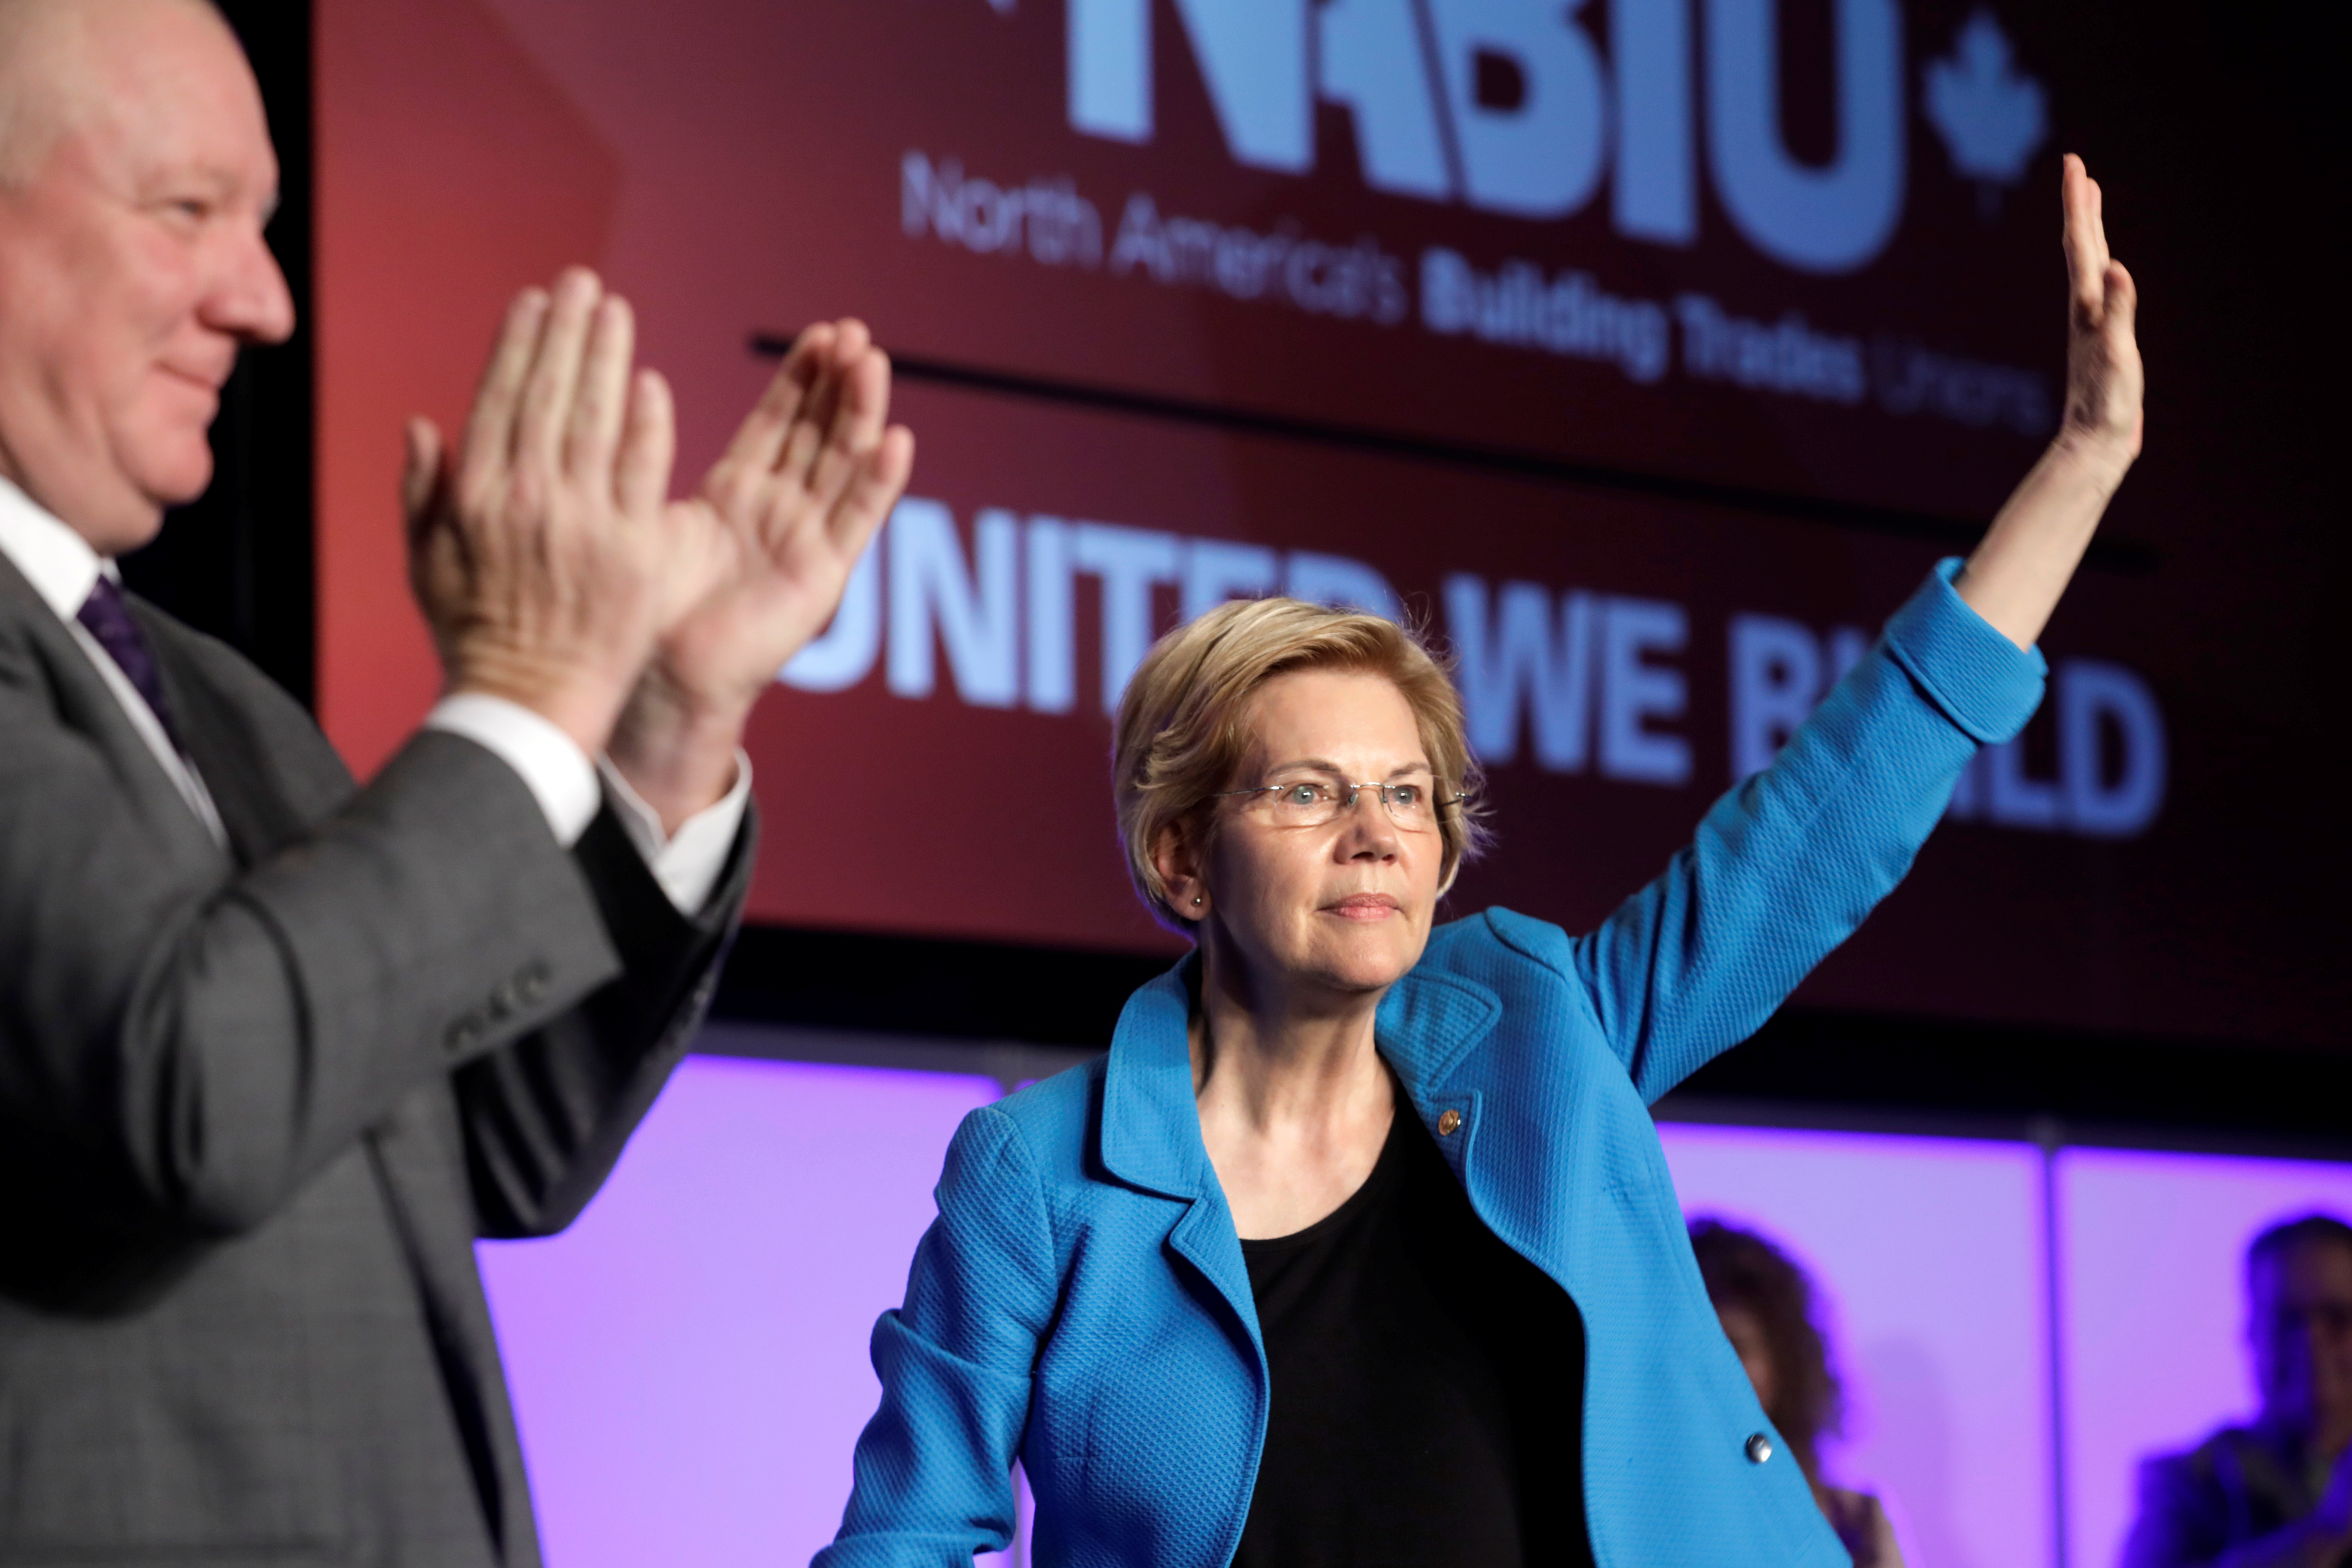 Democratic U.S. presidential candidate Senator Elizabeth Warren (D-MA) waves at the North America's Building Trades Unions (NABTU) 2019 legislative conference in Washington, U.S., April 10, 2019. REUTERS/Yuri Gripas